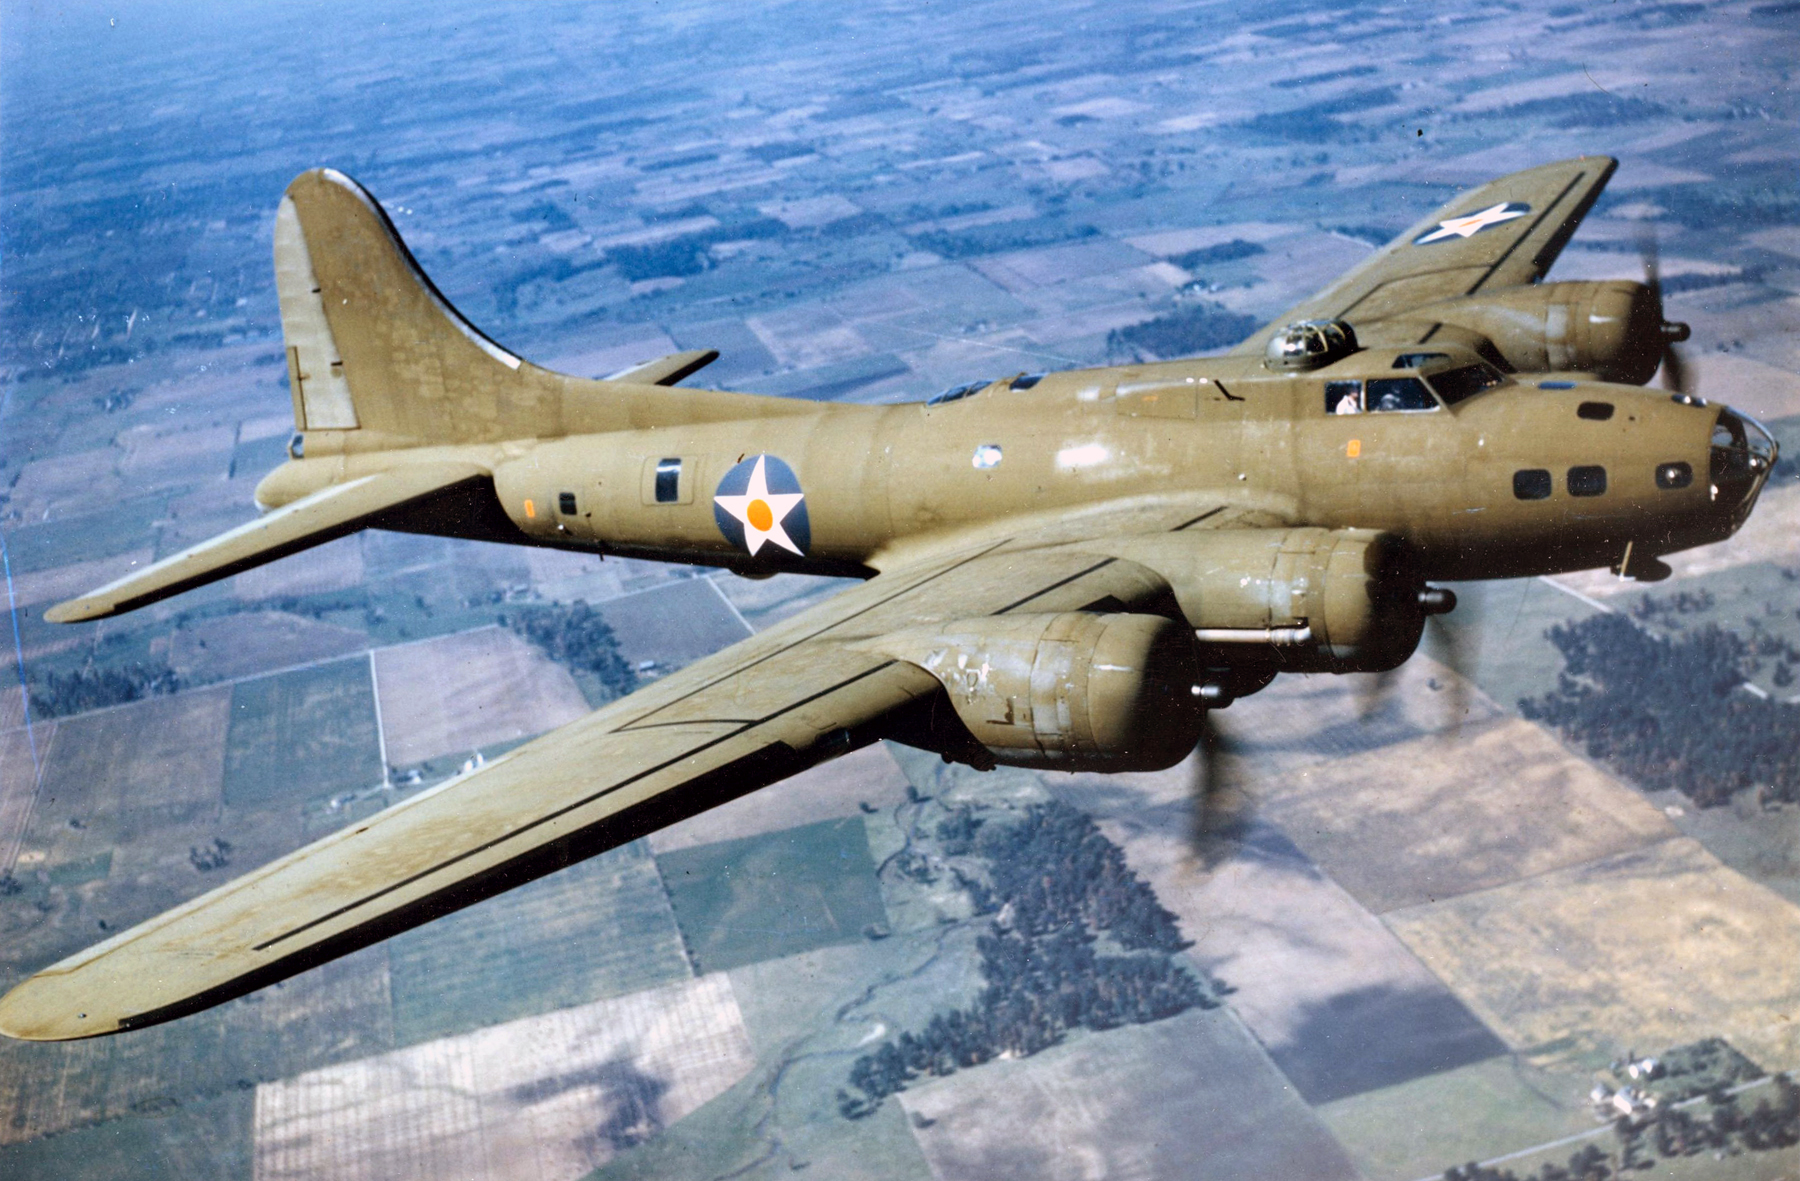 Bud Storrs flew the iconic B-17, pictured here.